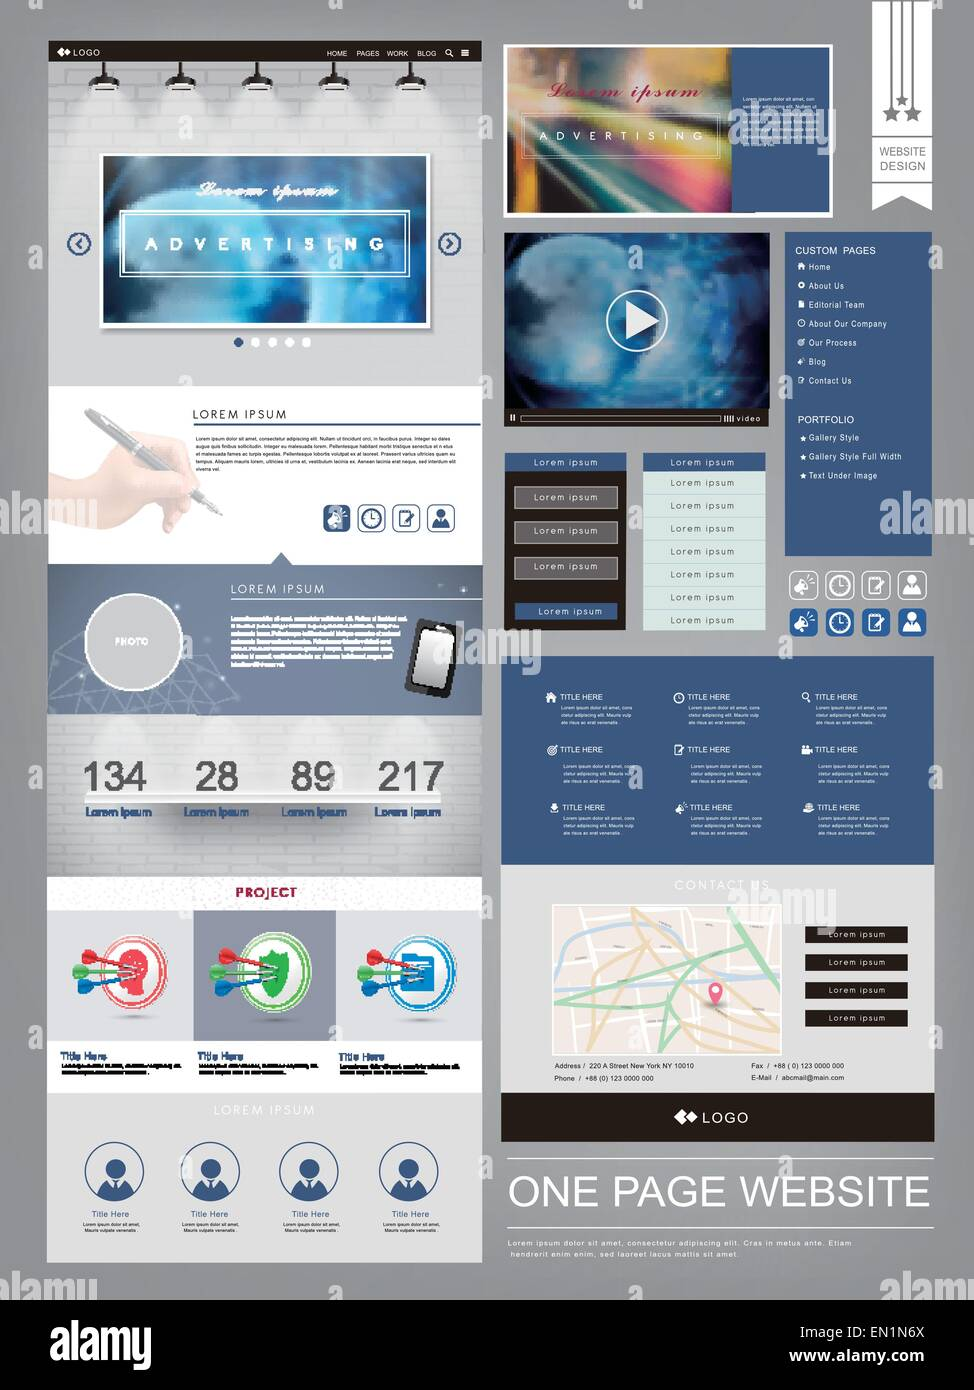 Elegant One Page Website Design Stockfotos & Elegant One Page ...